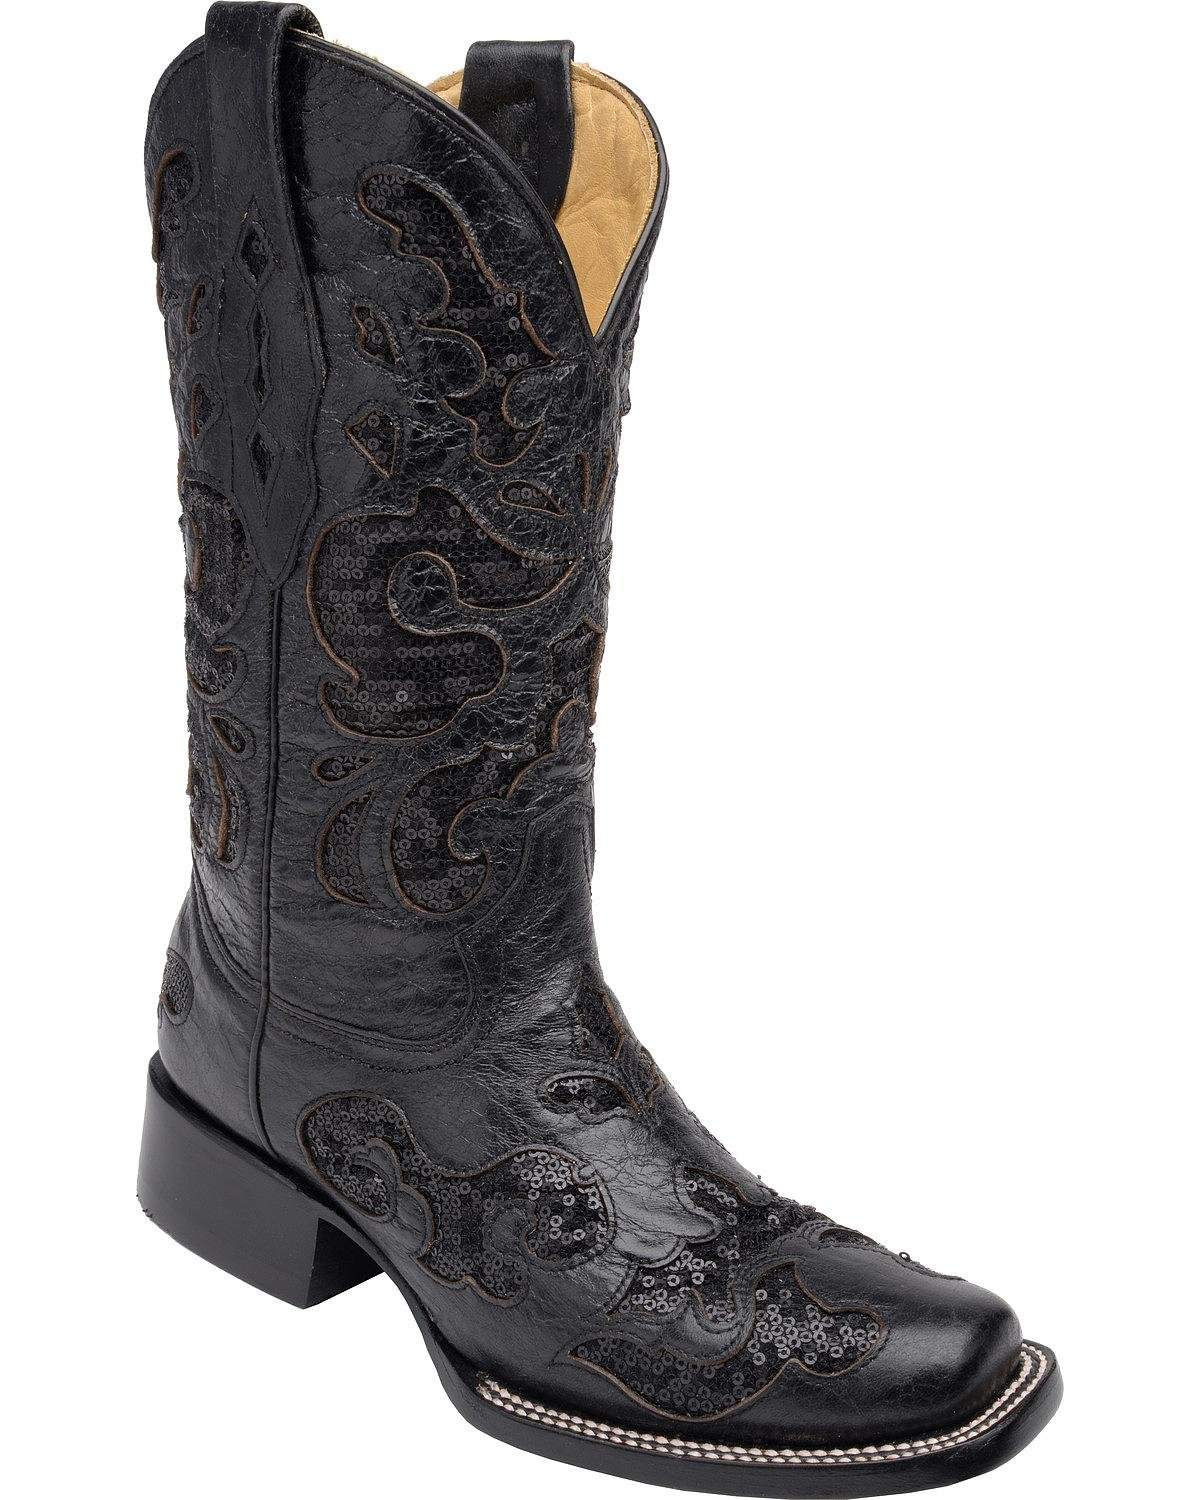 Corral Women's Sequin Inlay Cowgirl Boot Square Toe Black B01FUG7D3A 7.5 M US|Black